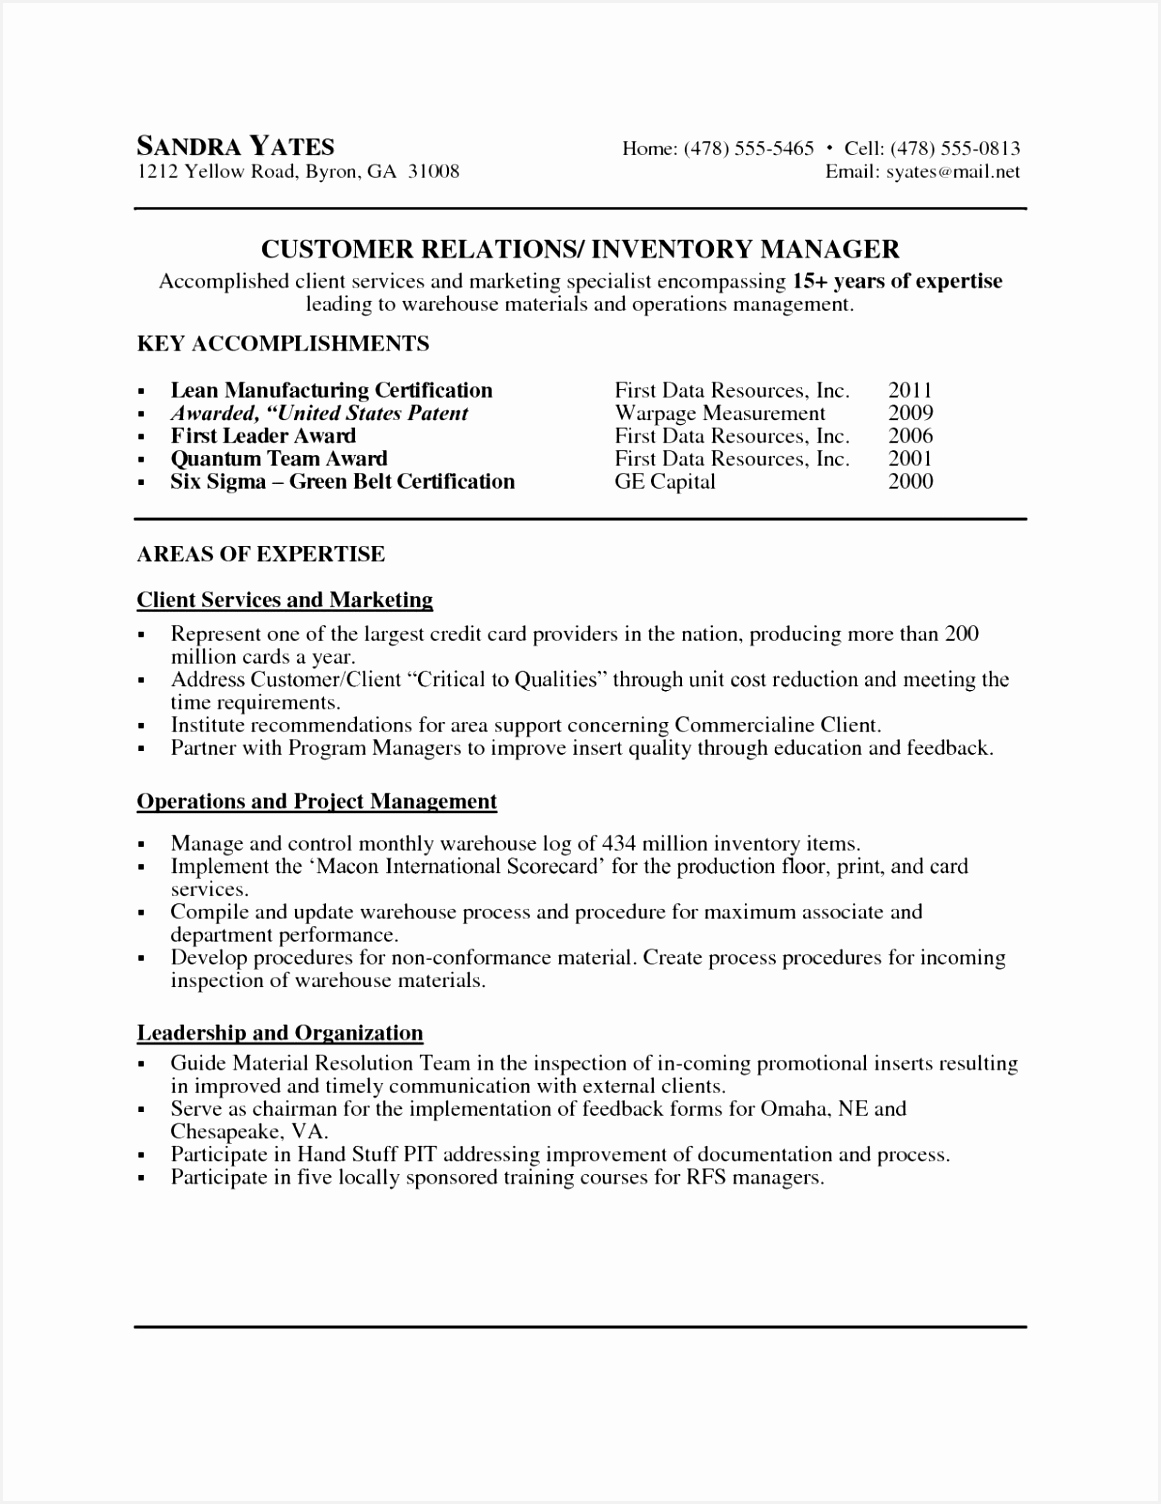 Quality Control Inspector Resume Sample Fghjg Inspirational Recruiter Resume Sample — Resumes Project Of Quality Control Inspector Resume Sample S6uhu Lovely Resumes Qualitytrol Resume Technician Objective Sample Pdf Inspector